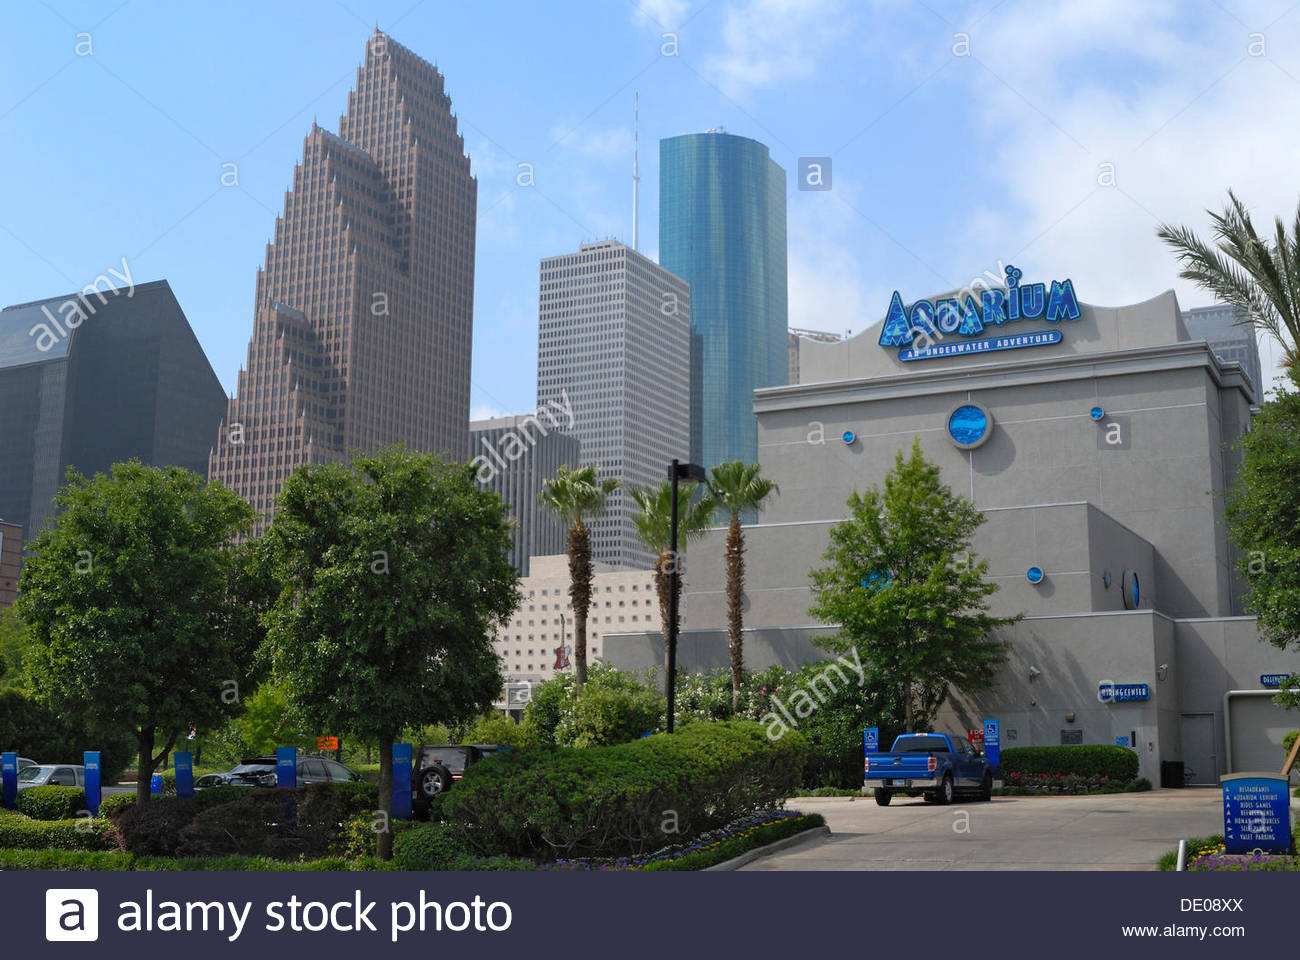 Houston Aquarium Building